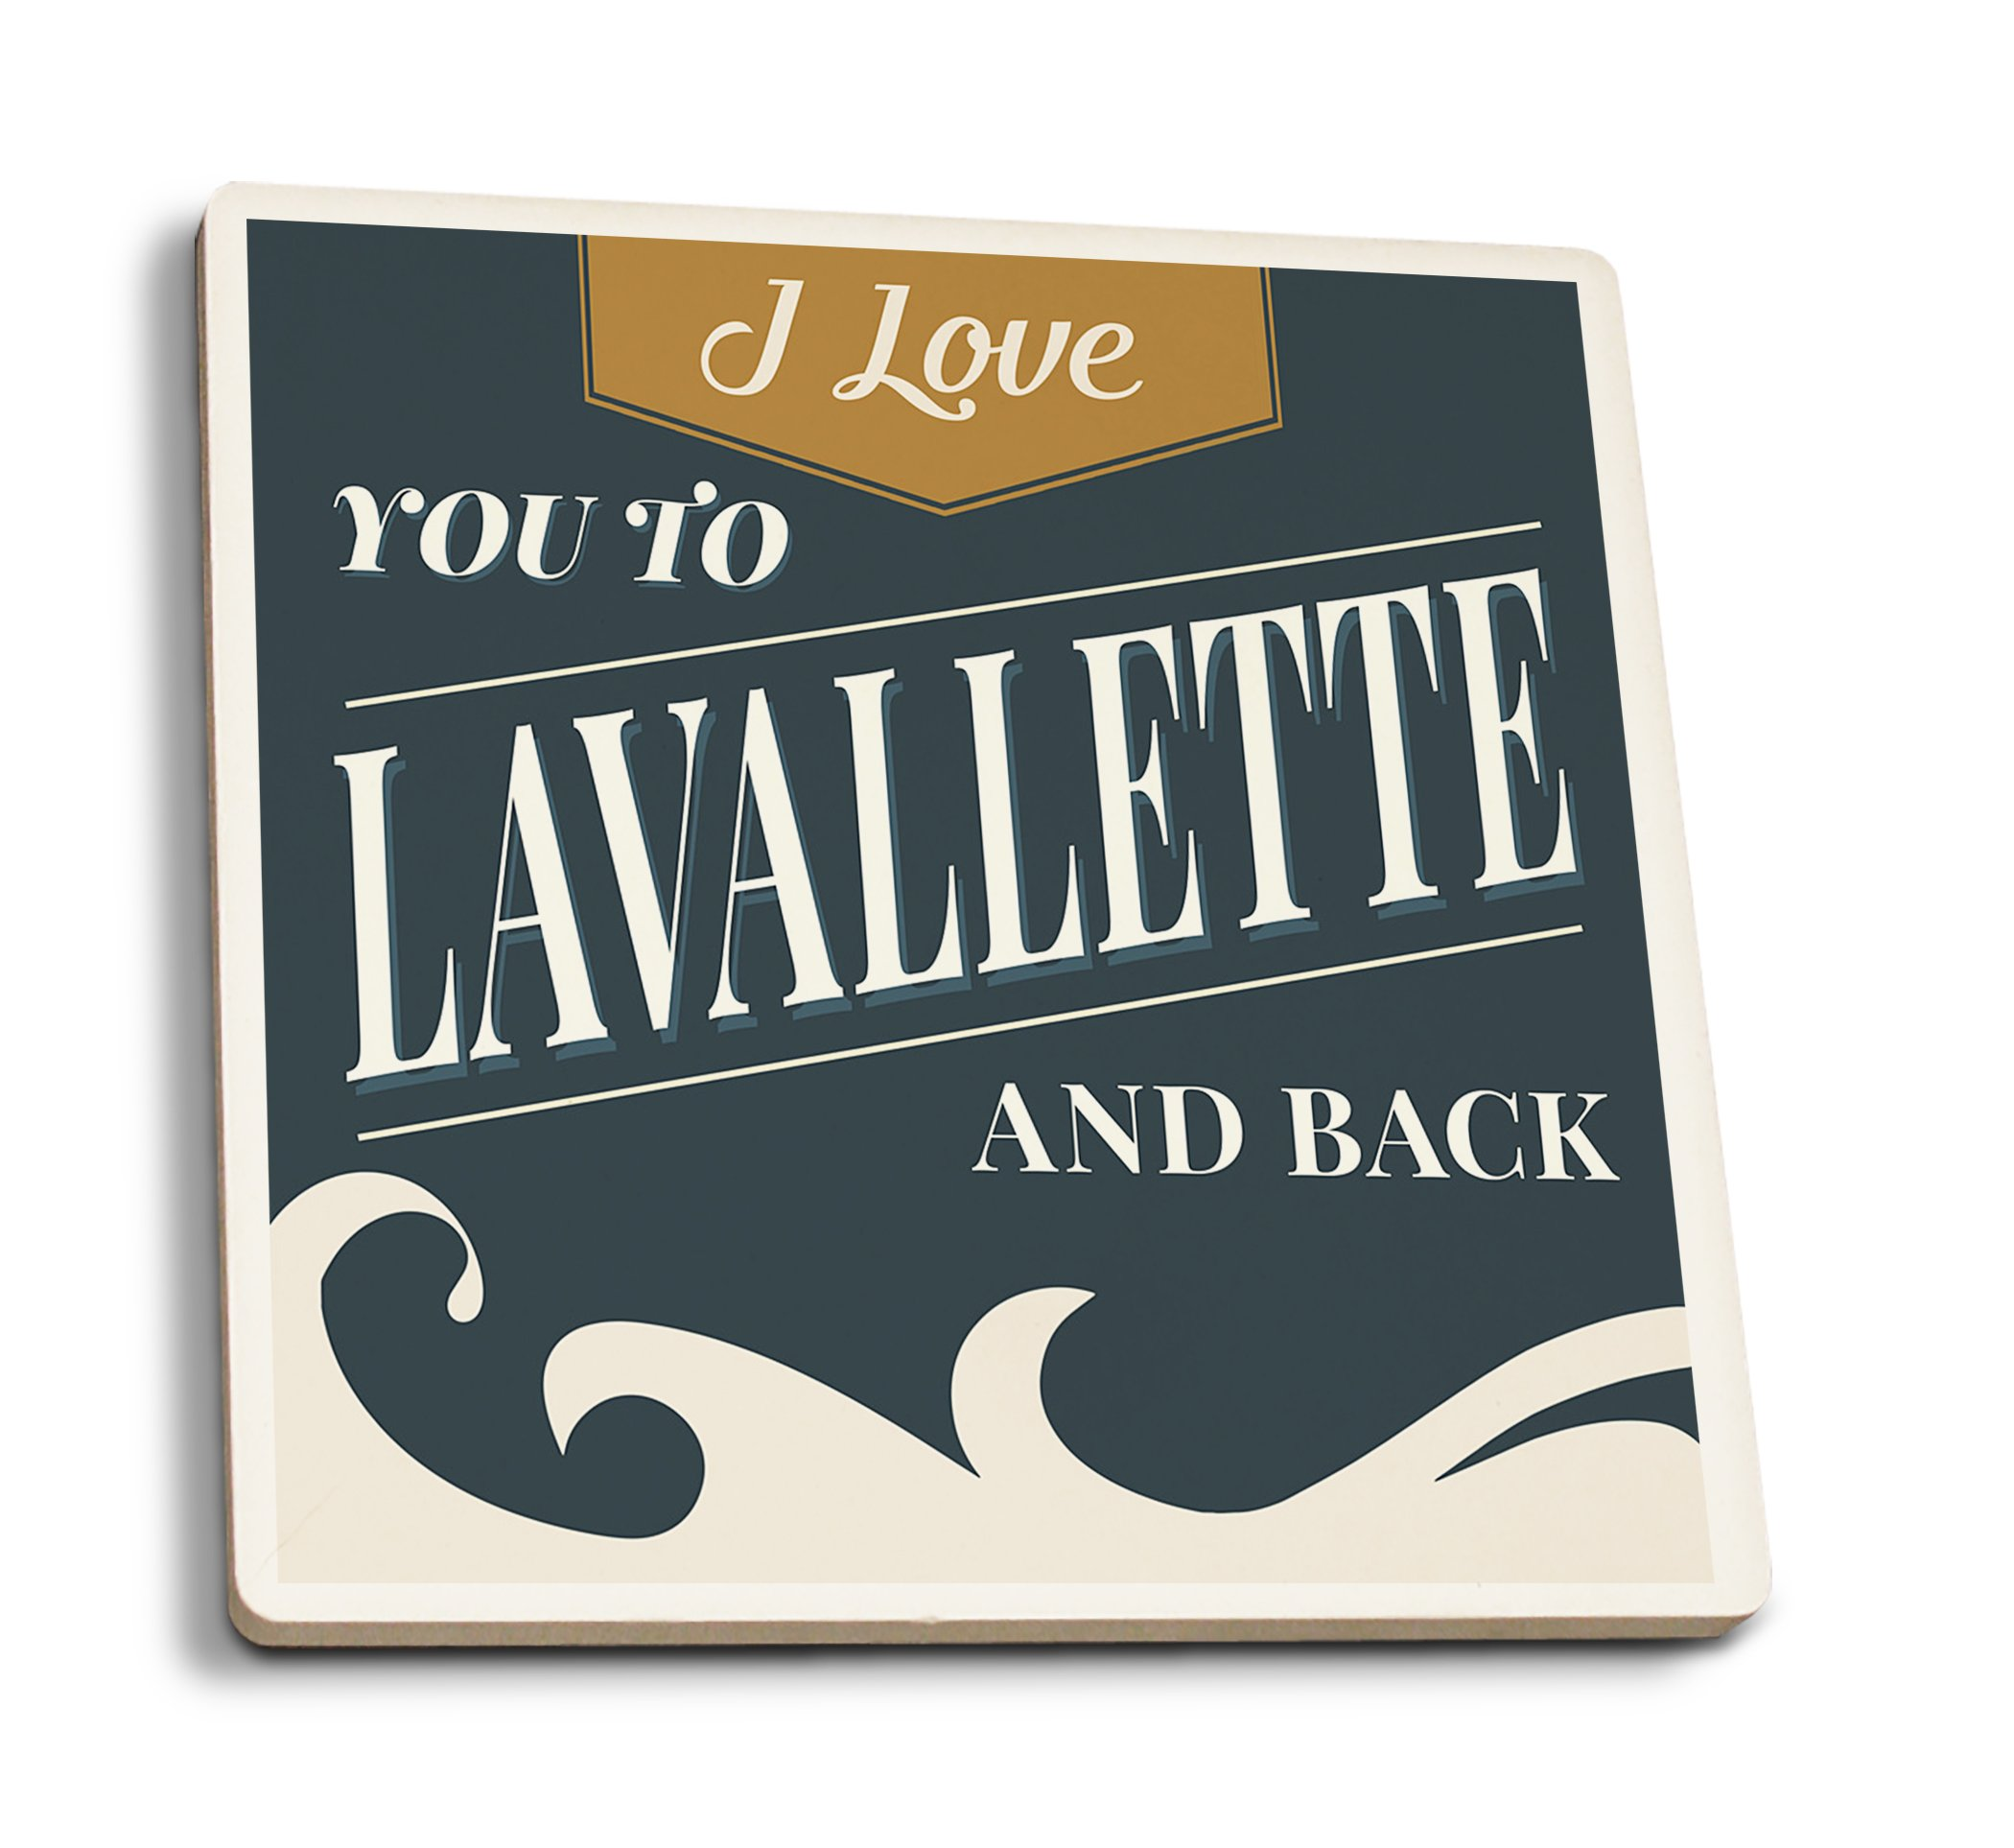 Love You to Lavallette, New Jersey and Back - Beach Sentiment - Dark Blue and Gold (Set of 4 Ceramic Coasters - Cork-Backed, Absorbent)